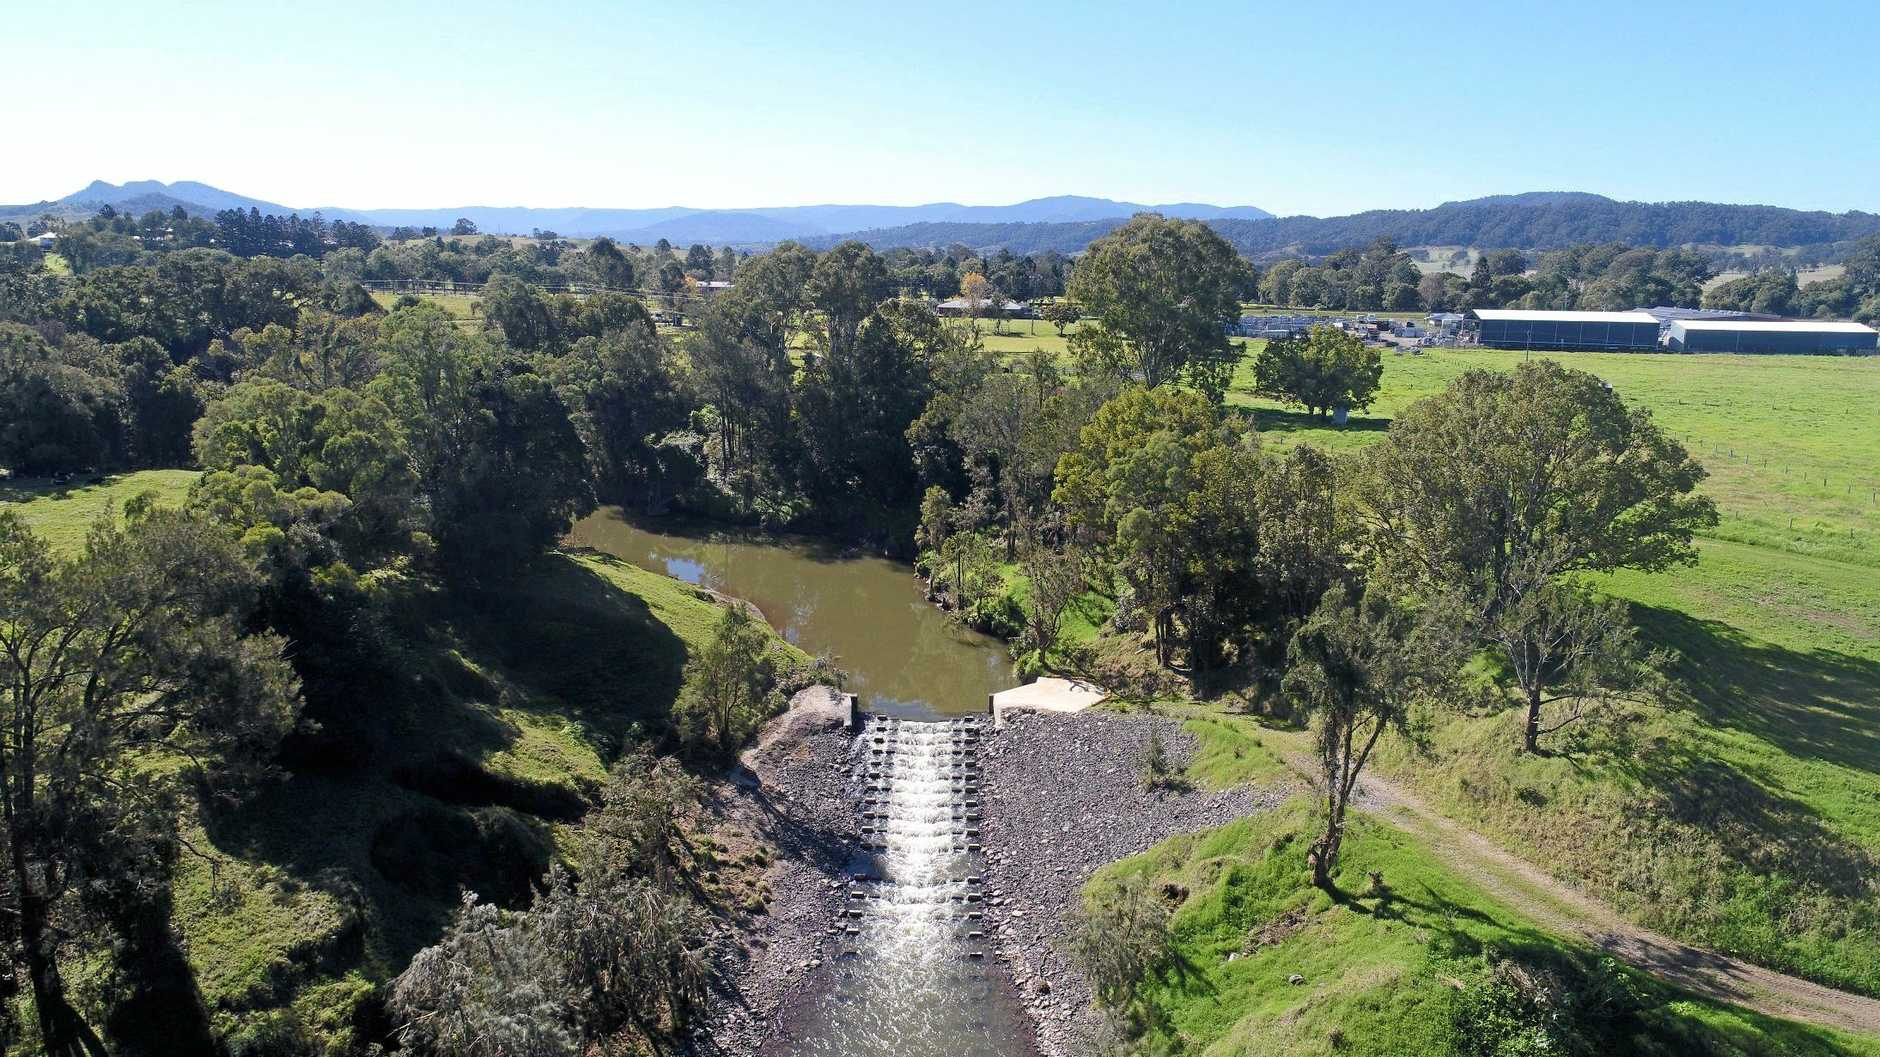 Included in the Kyogle Water Supply Augmentation Project was an upgrade to the fishway.